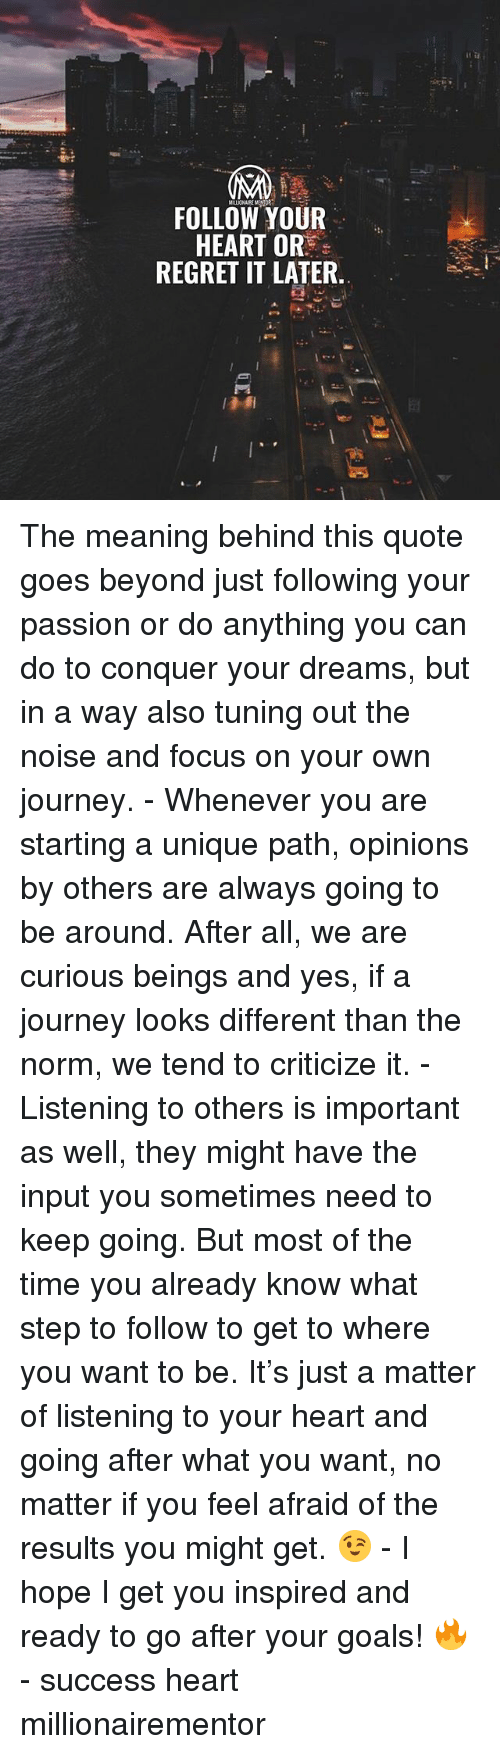 Goals, Journey, and Memes: FOLLOW YOUR  HEART OR  REGRET IT LATER. The meaning behind this quote goes beyond just following your passion or do anything you can do to conquer your dreams, but in a way also tuning out the noise and focus on your own journey. - Whenever you are starting a unique path, opinions by others are always going to be around. After all, we are curious beings and yes, if a journey looks different than the norm, we tend to criticize it. - Listening to others is important as well, they might have the input you sometimes need to keep going. But most of the time you already know what step to follow to get to where you want to be. It's just a matter of listening to your heart and going after what you want, no matter if you feel afraid of the results you might get. 😉 - I hope I get you inspired and ready to go after your goals! 🔥 - success heart millionairementor